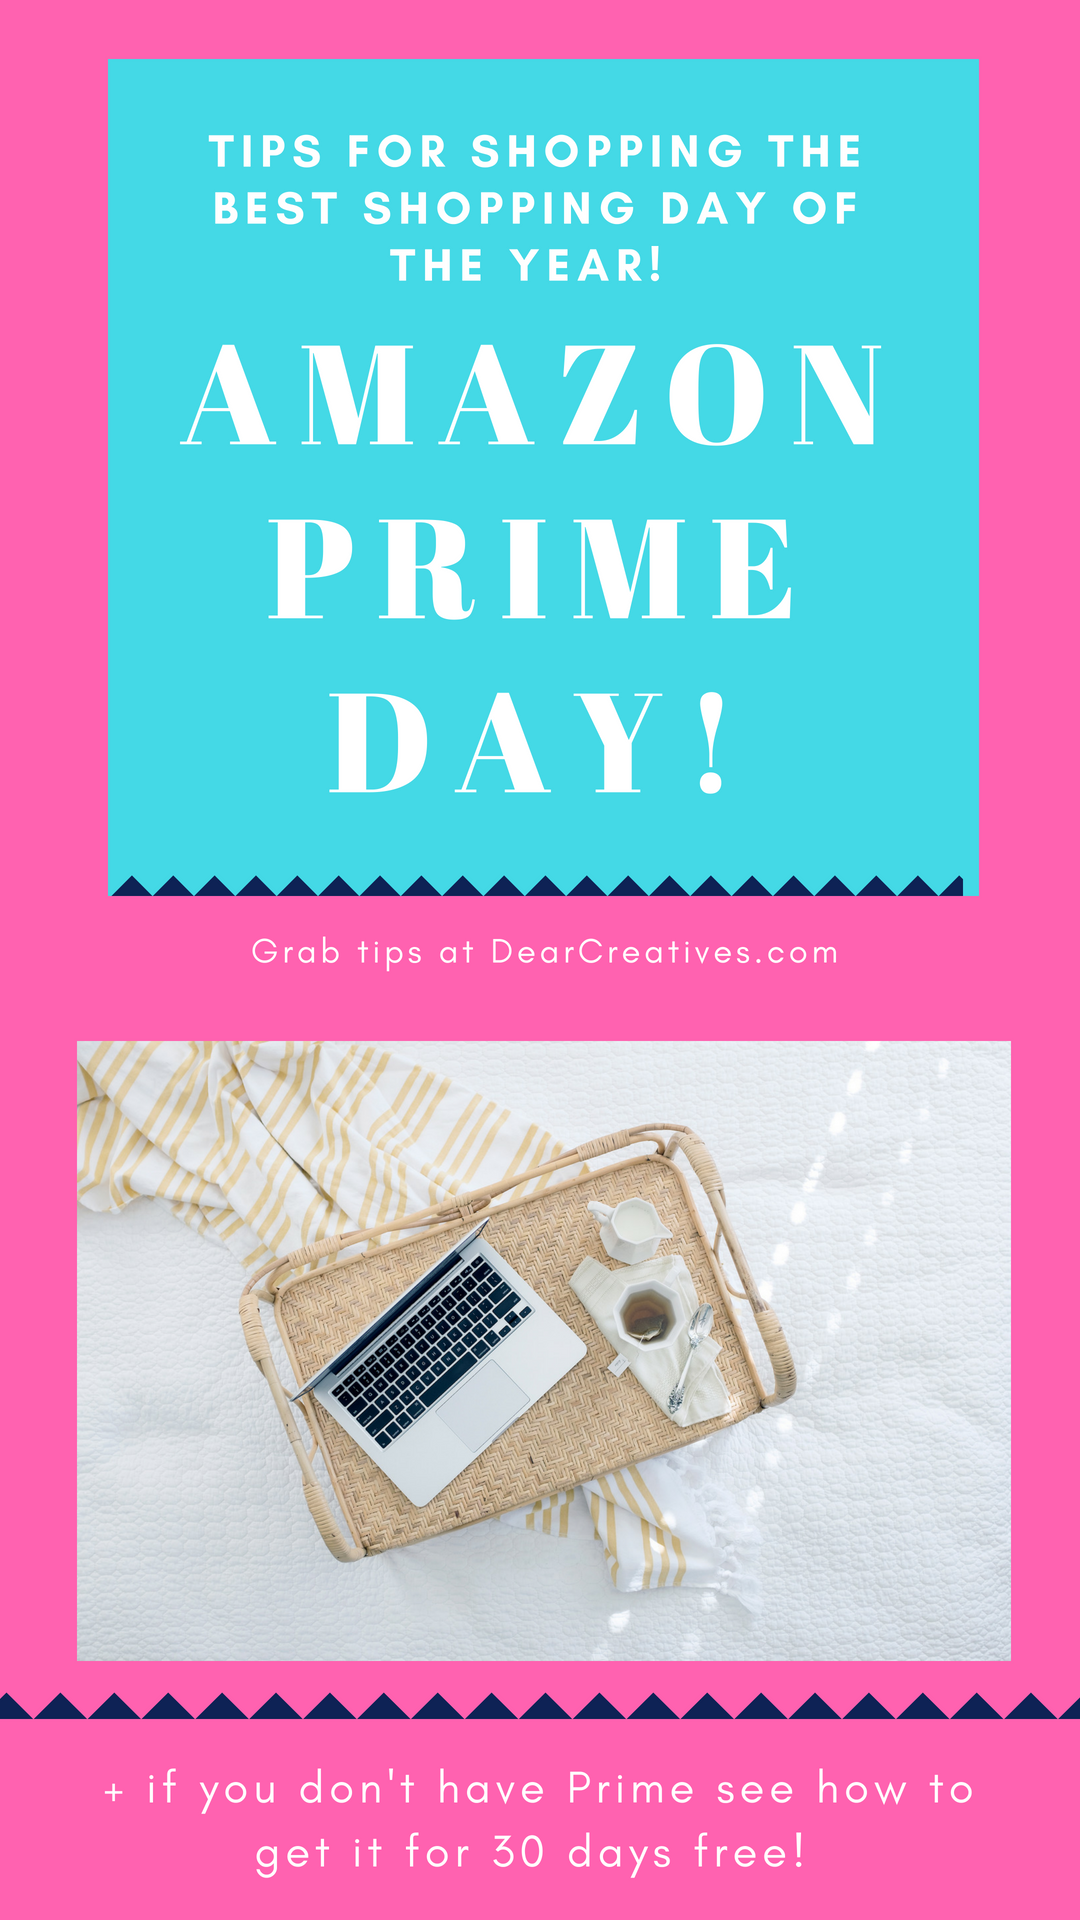 Tips For Shopping Amazon Prime And Prime Day